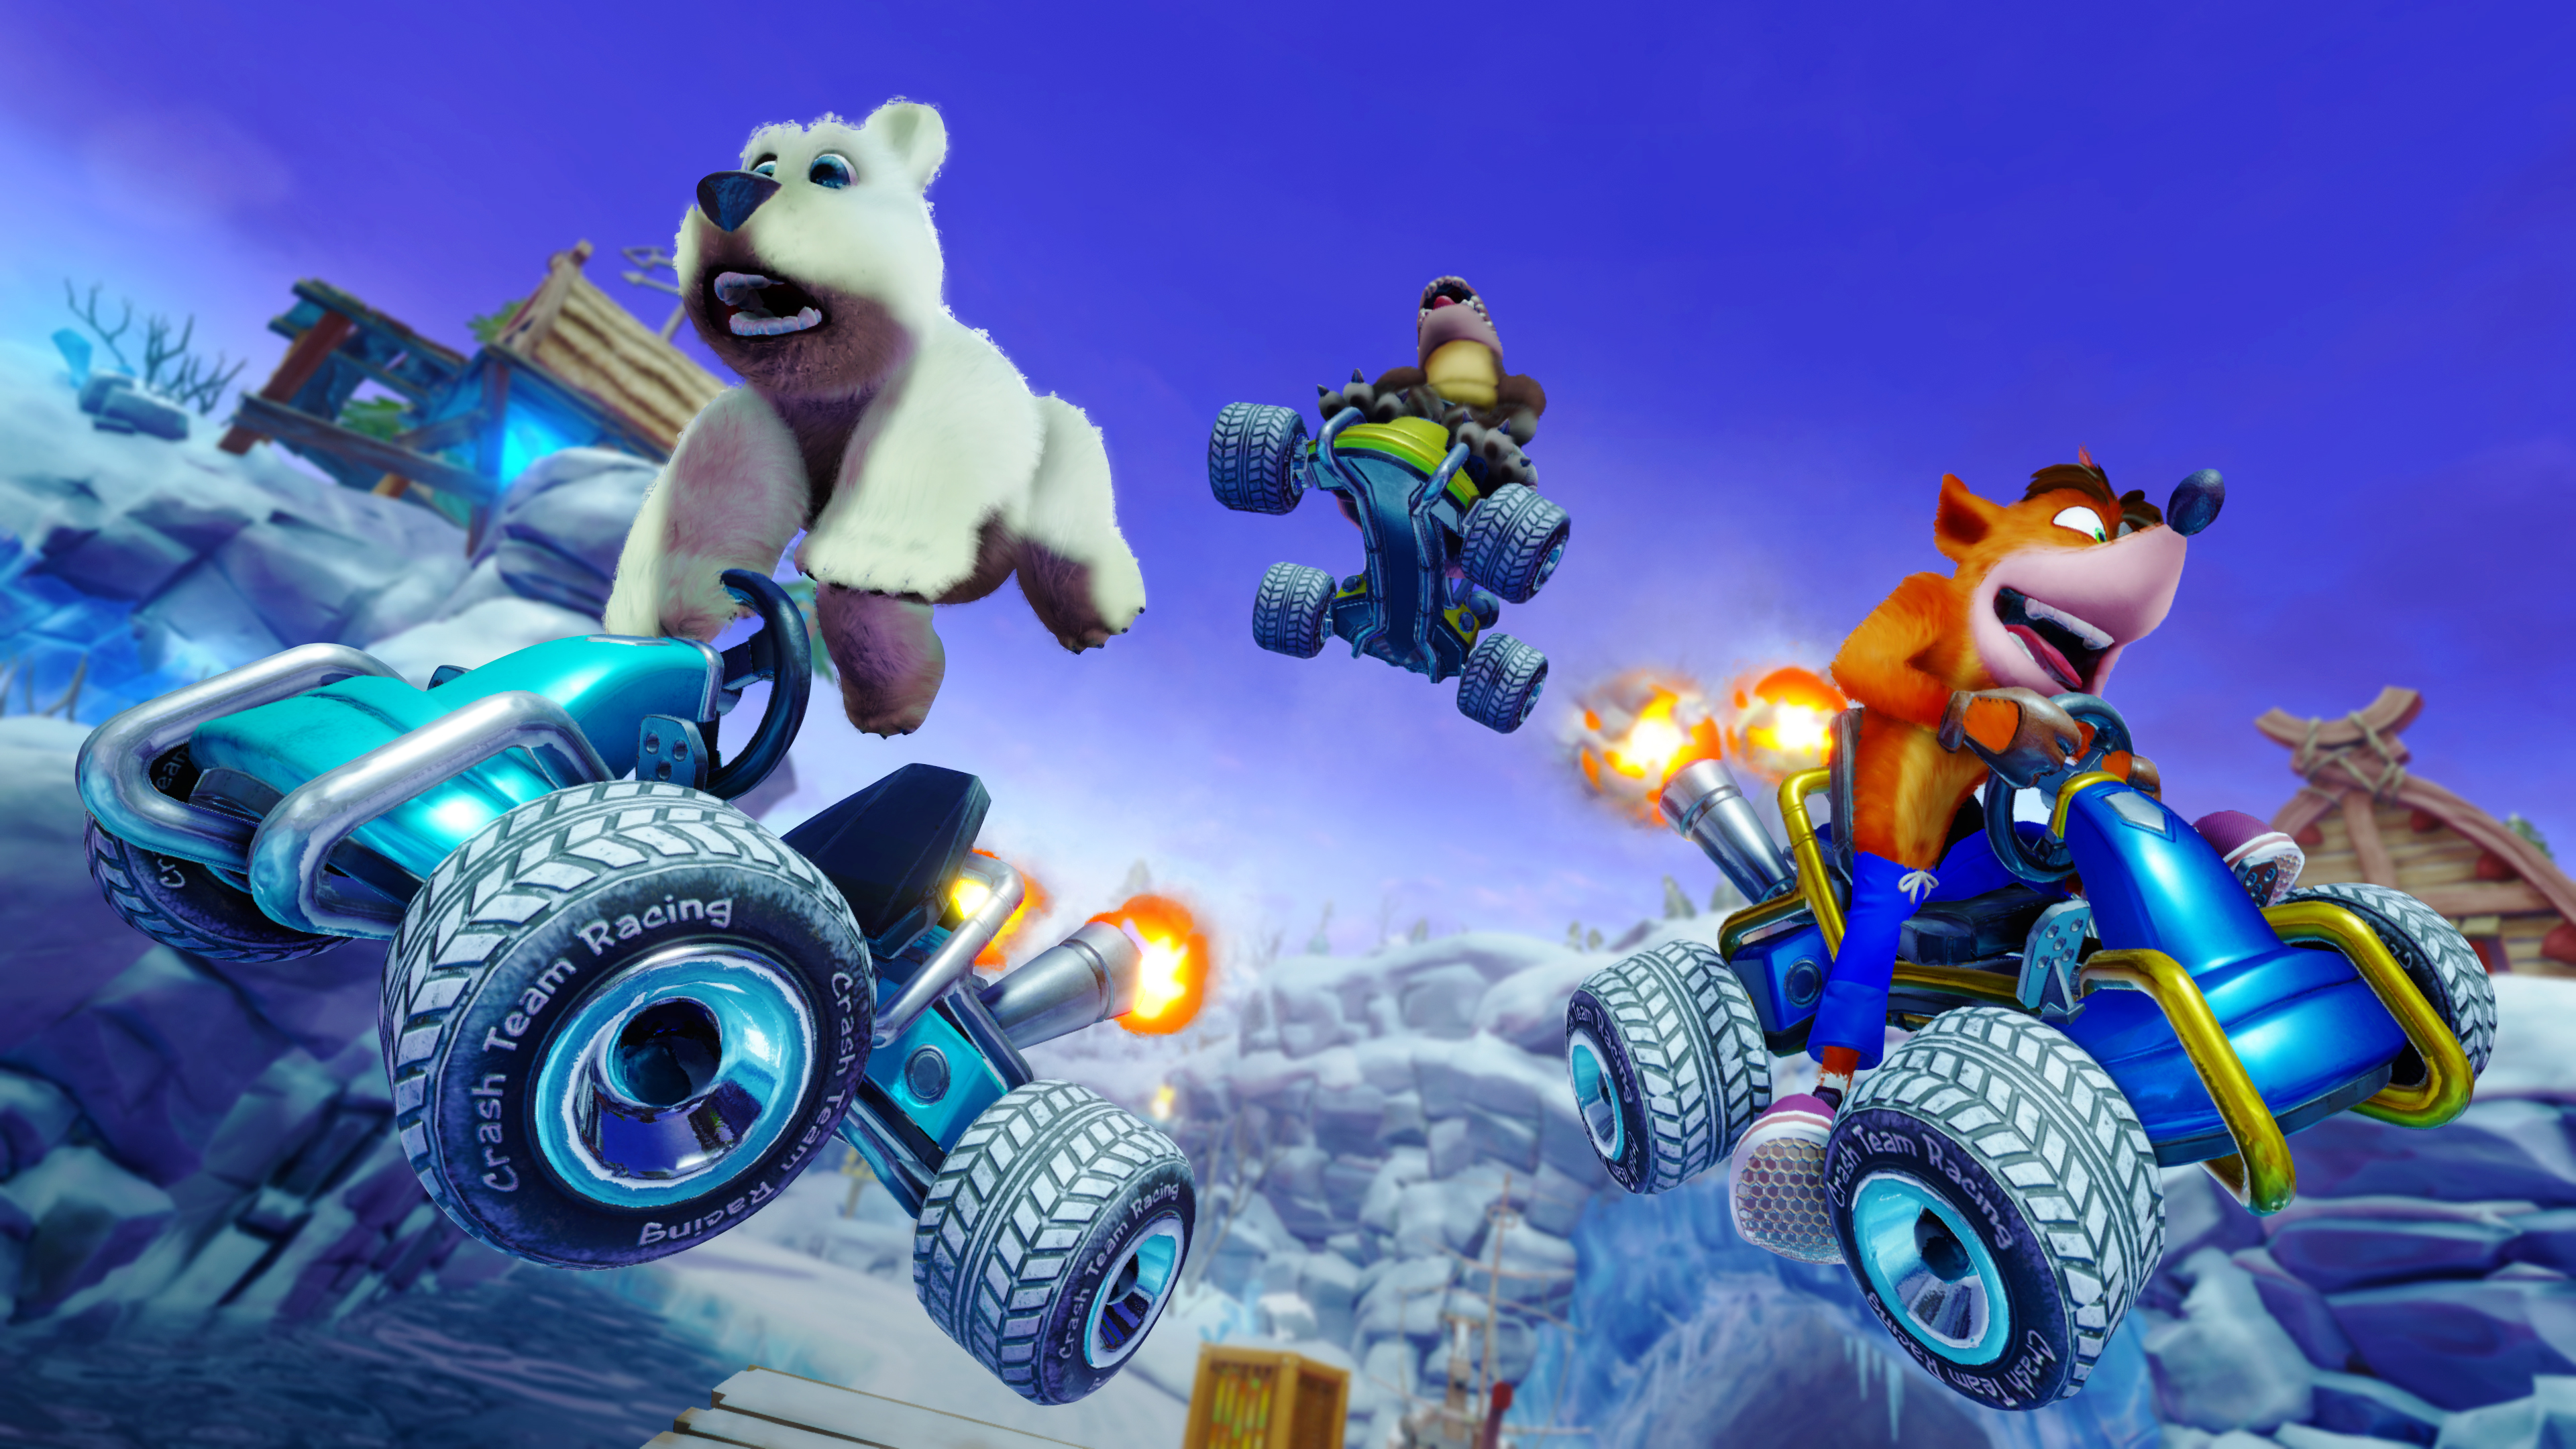 Crash Team Racing: Nintendo Switch Version Is 720p Docked And 480p